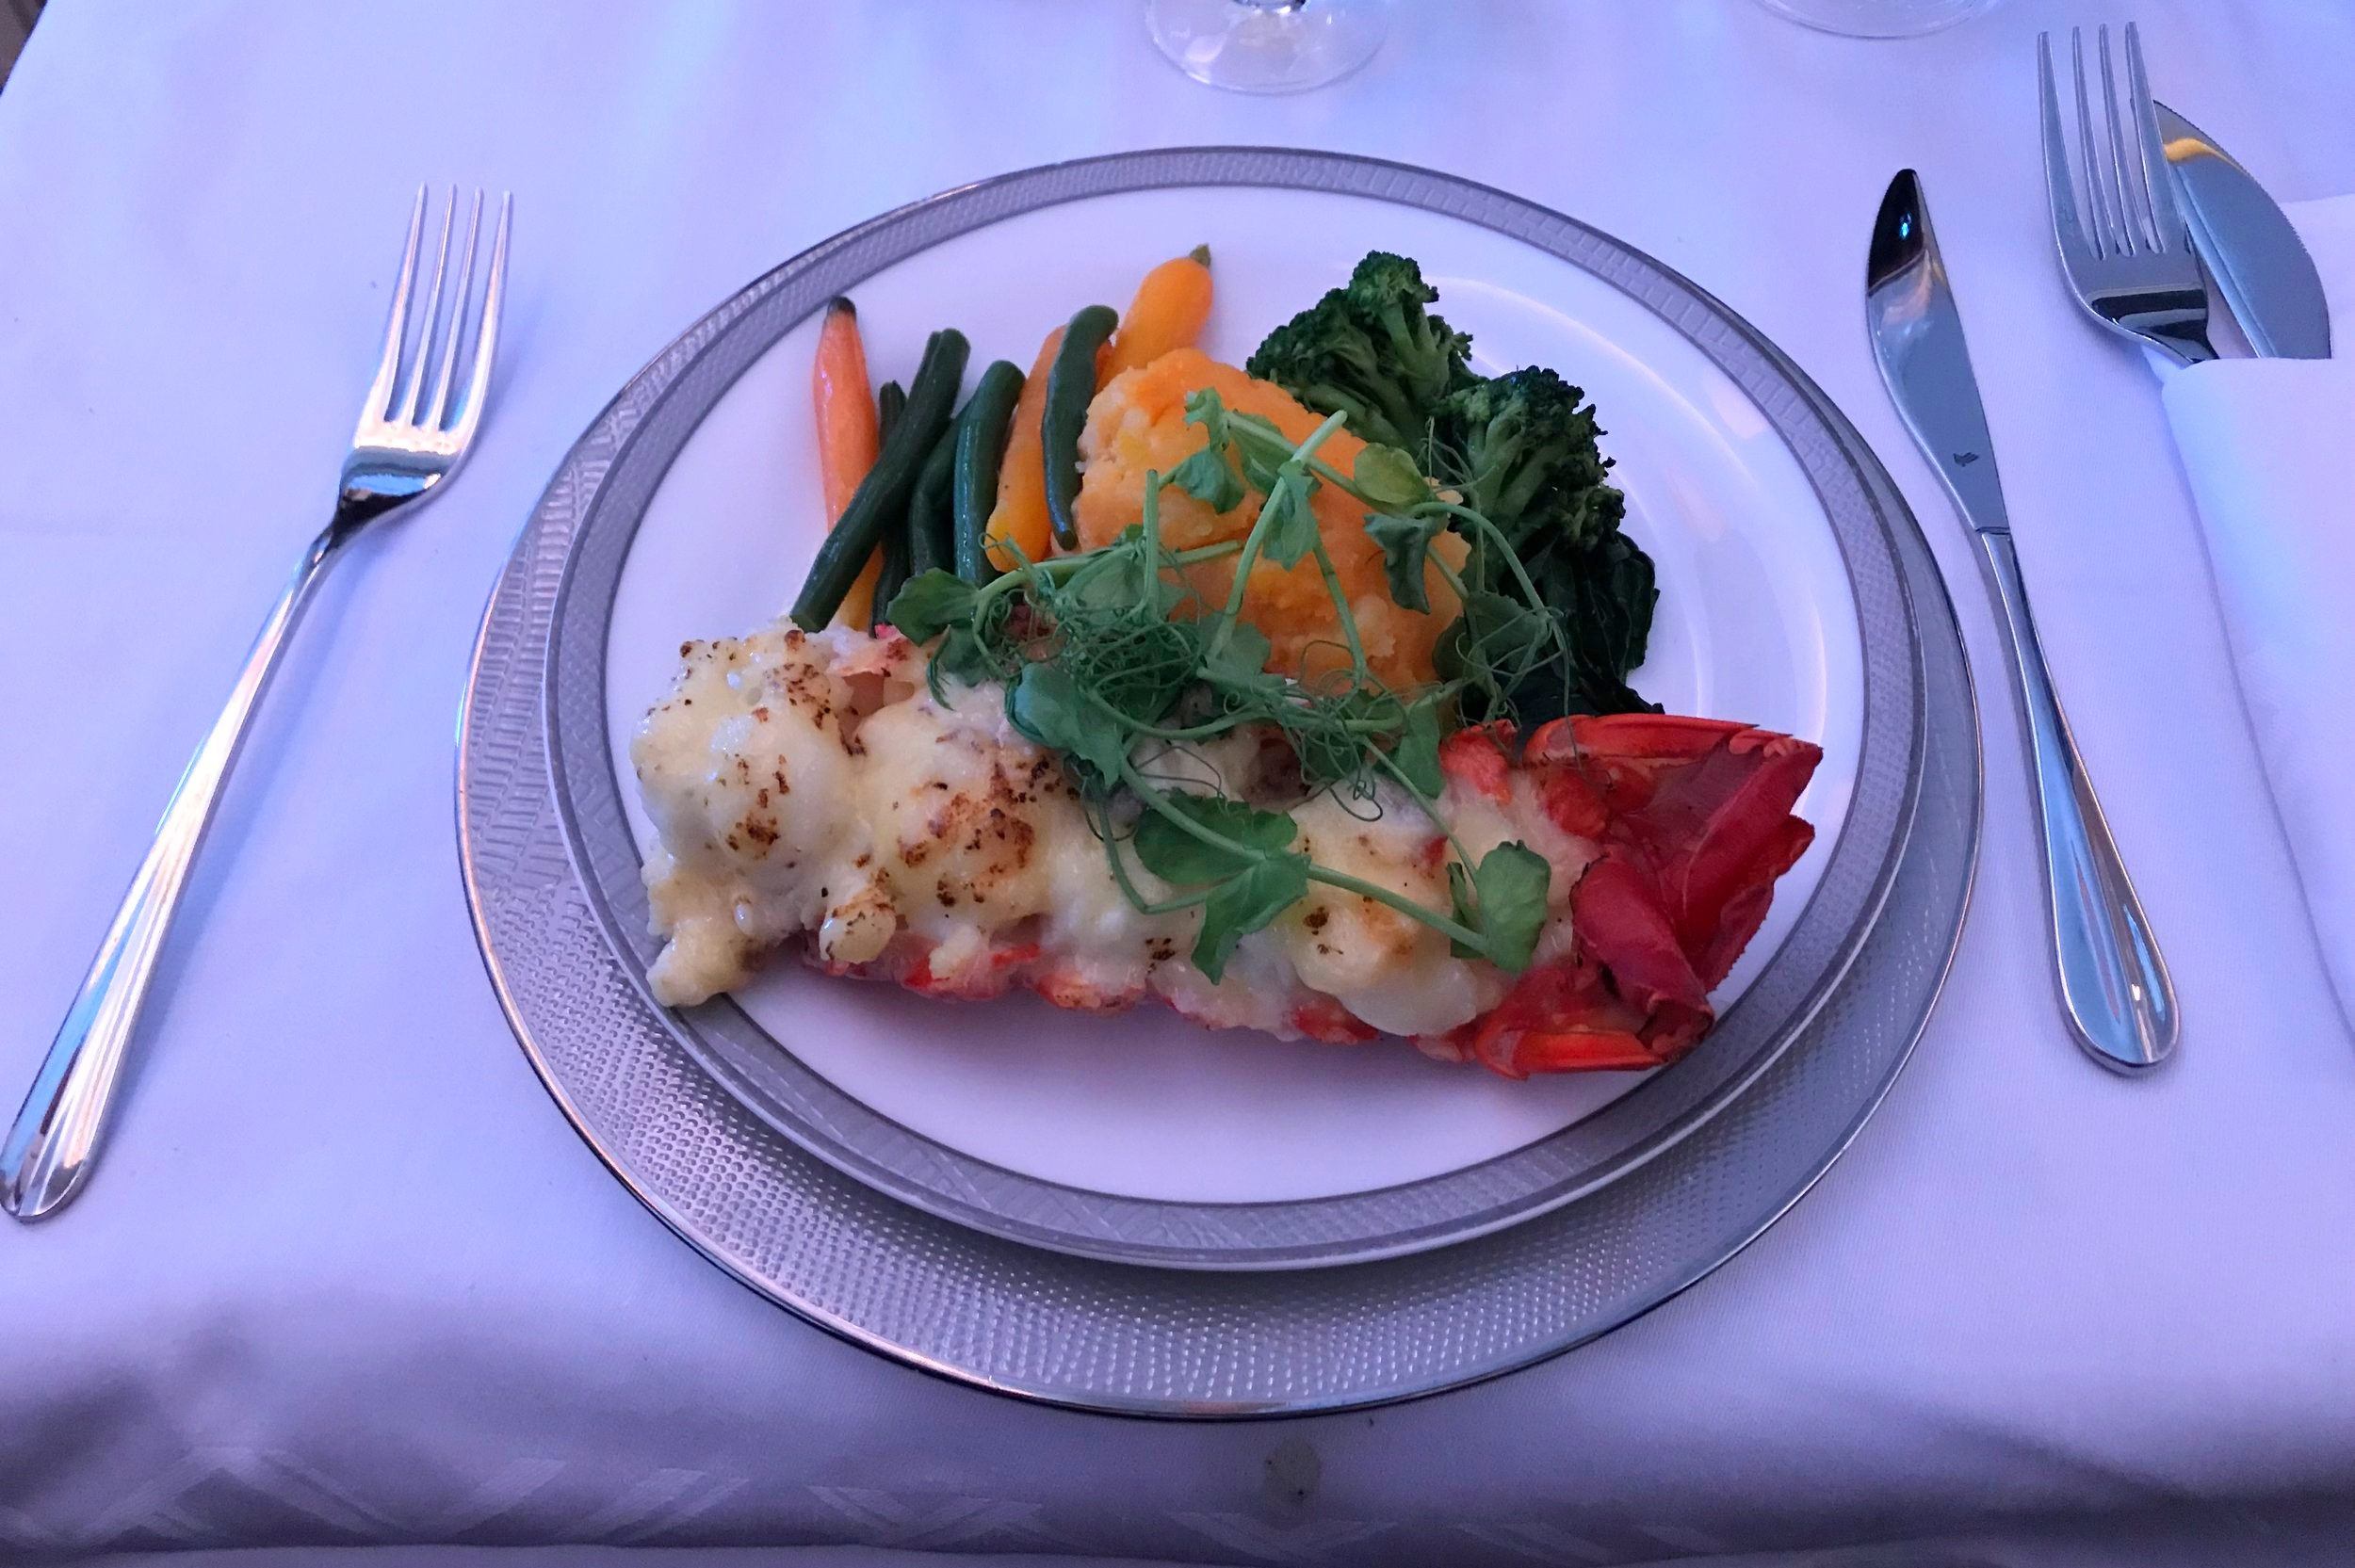 Singapore Airlines Suites Class – Lobster Thermidor